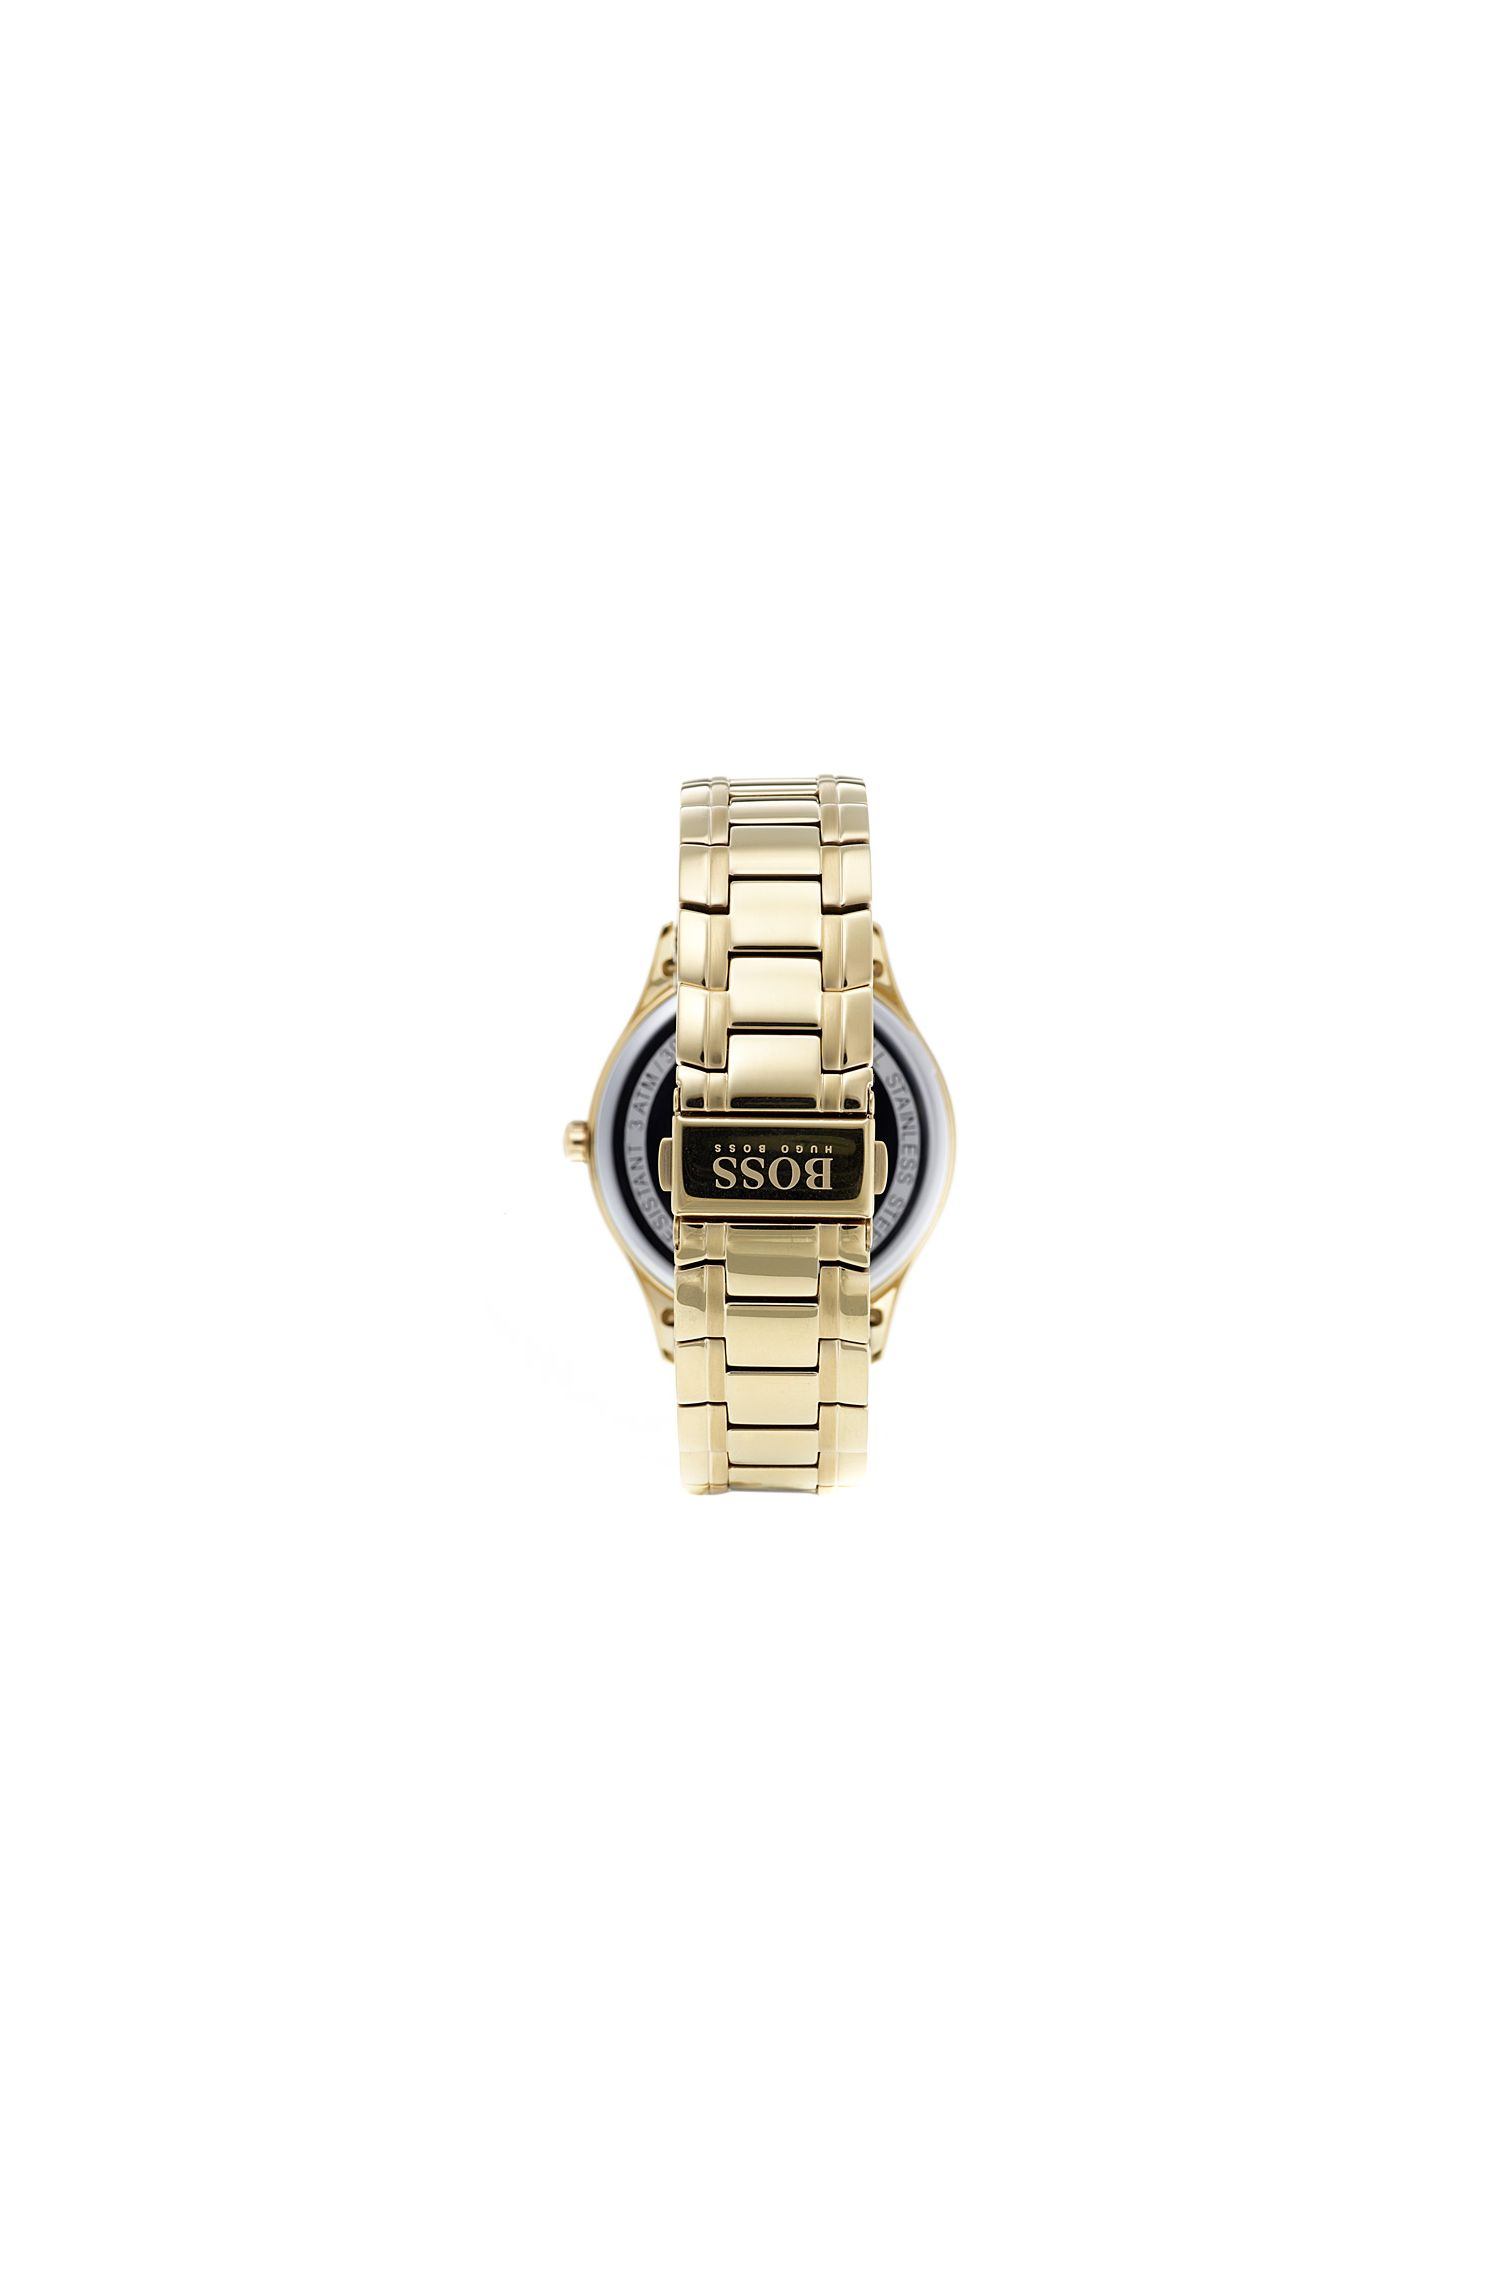 Govenor Casual Sport, Gold-Tone Steel Watch | 1513521, Assorted-Pre-Pack